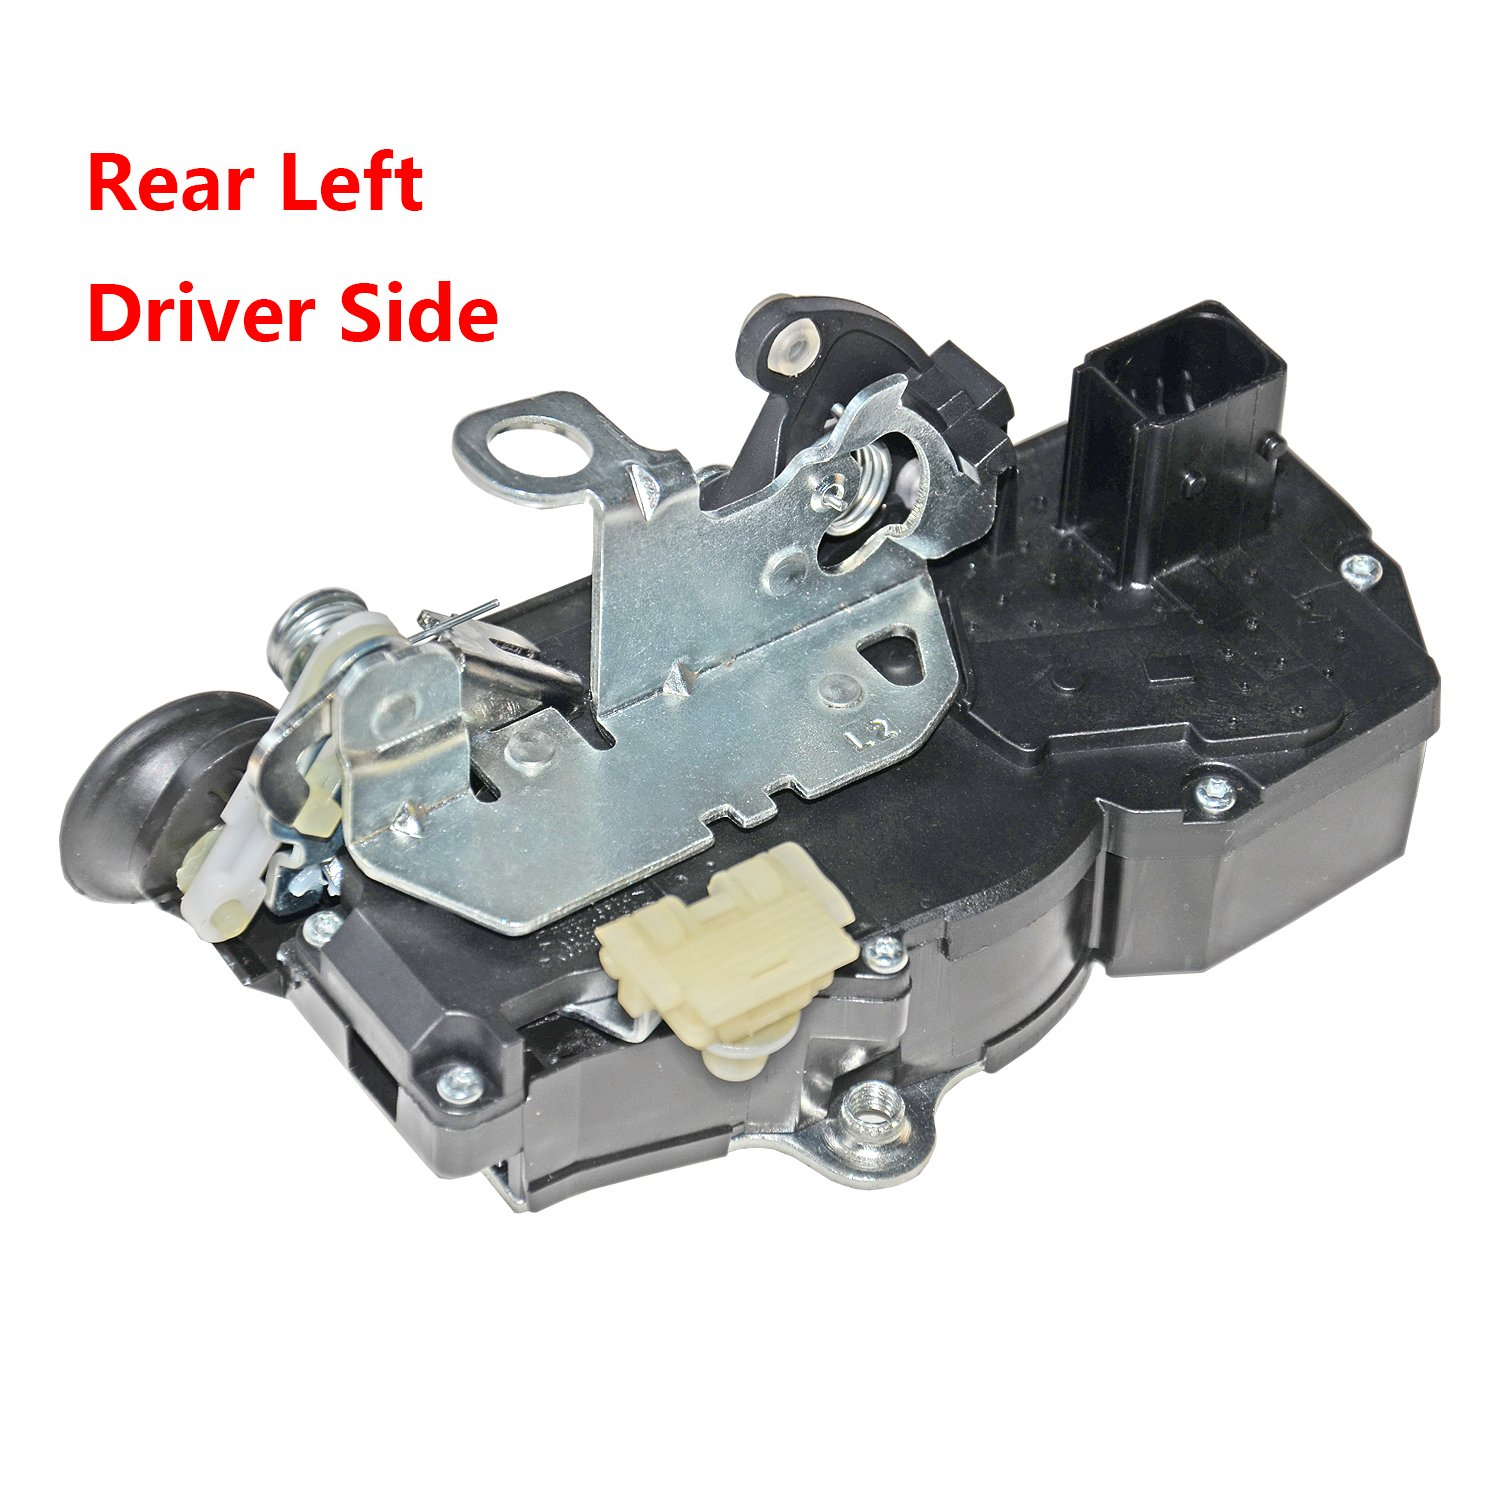 Rear Right Passenger Side Door Lock Actuator Motor For 2007-2009 GMC Yukon Chevy Tahoe Cadillac Escalade 15785127 15896625 20783858 25876390 25873487 GELUOXI